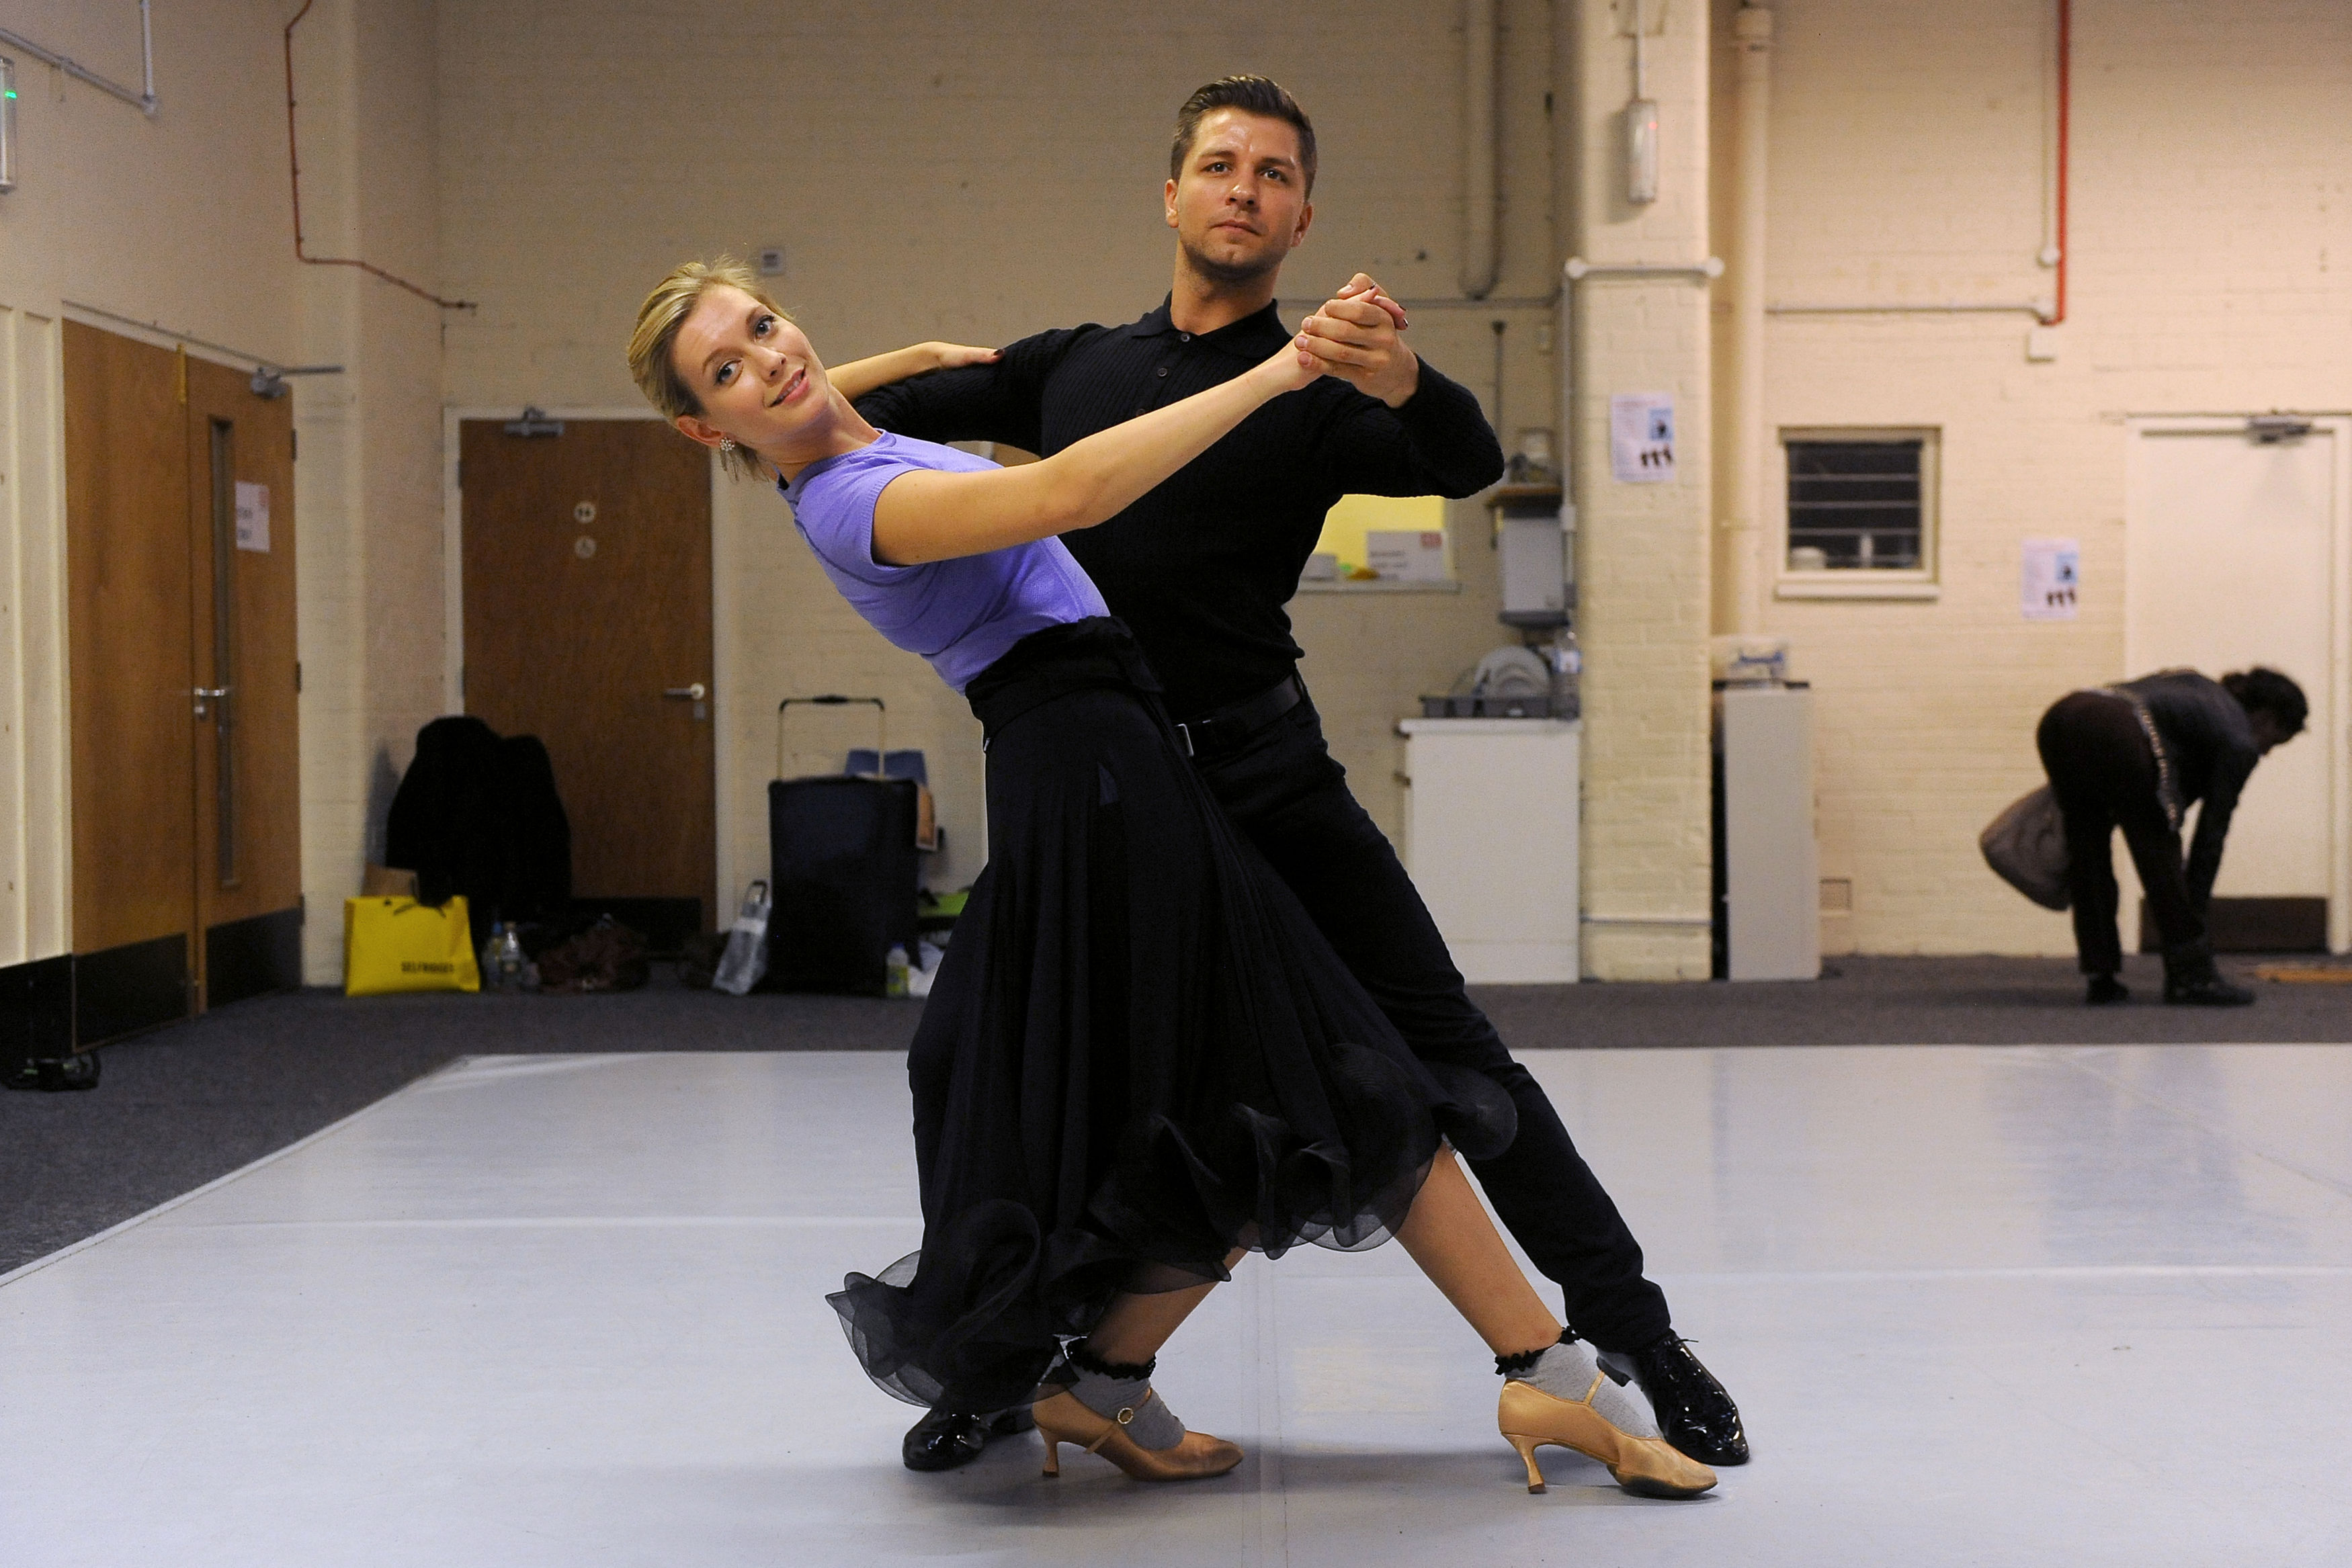 Rachel RIley and Pasha Kovalev Strictly